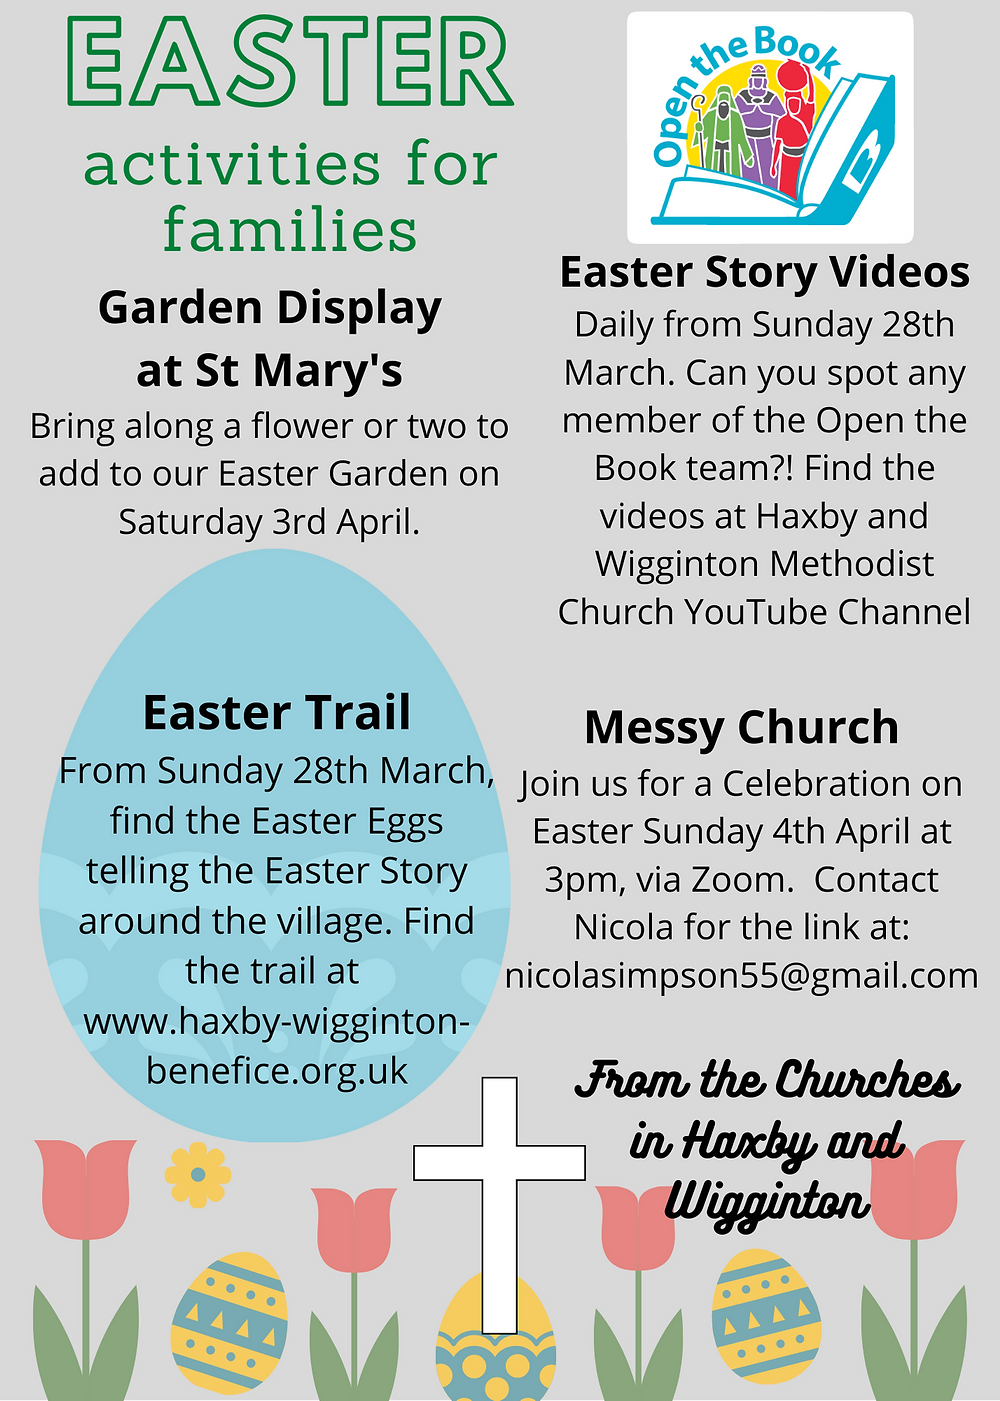 Easter Activities for Families poster